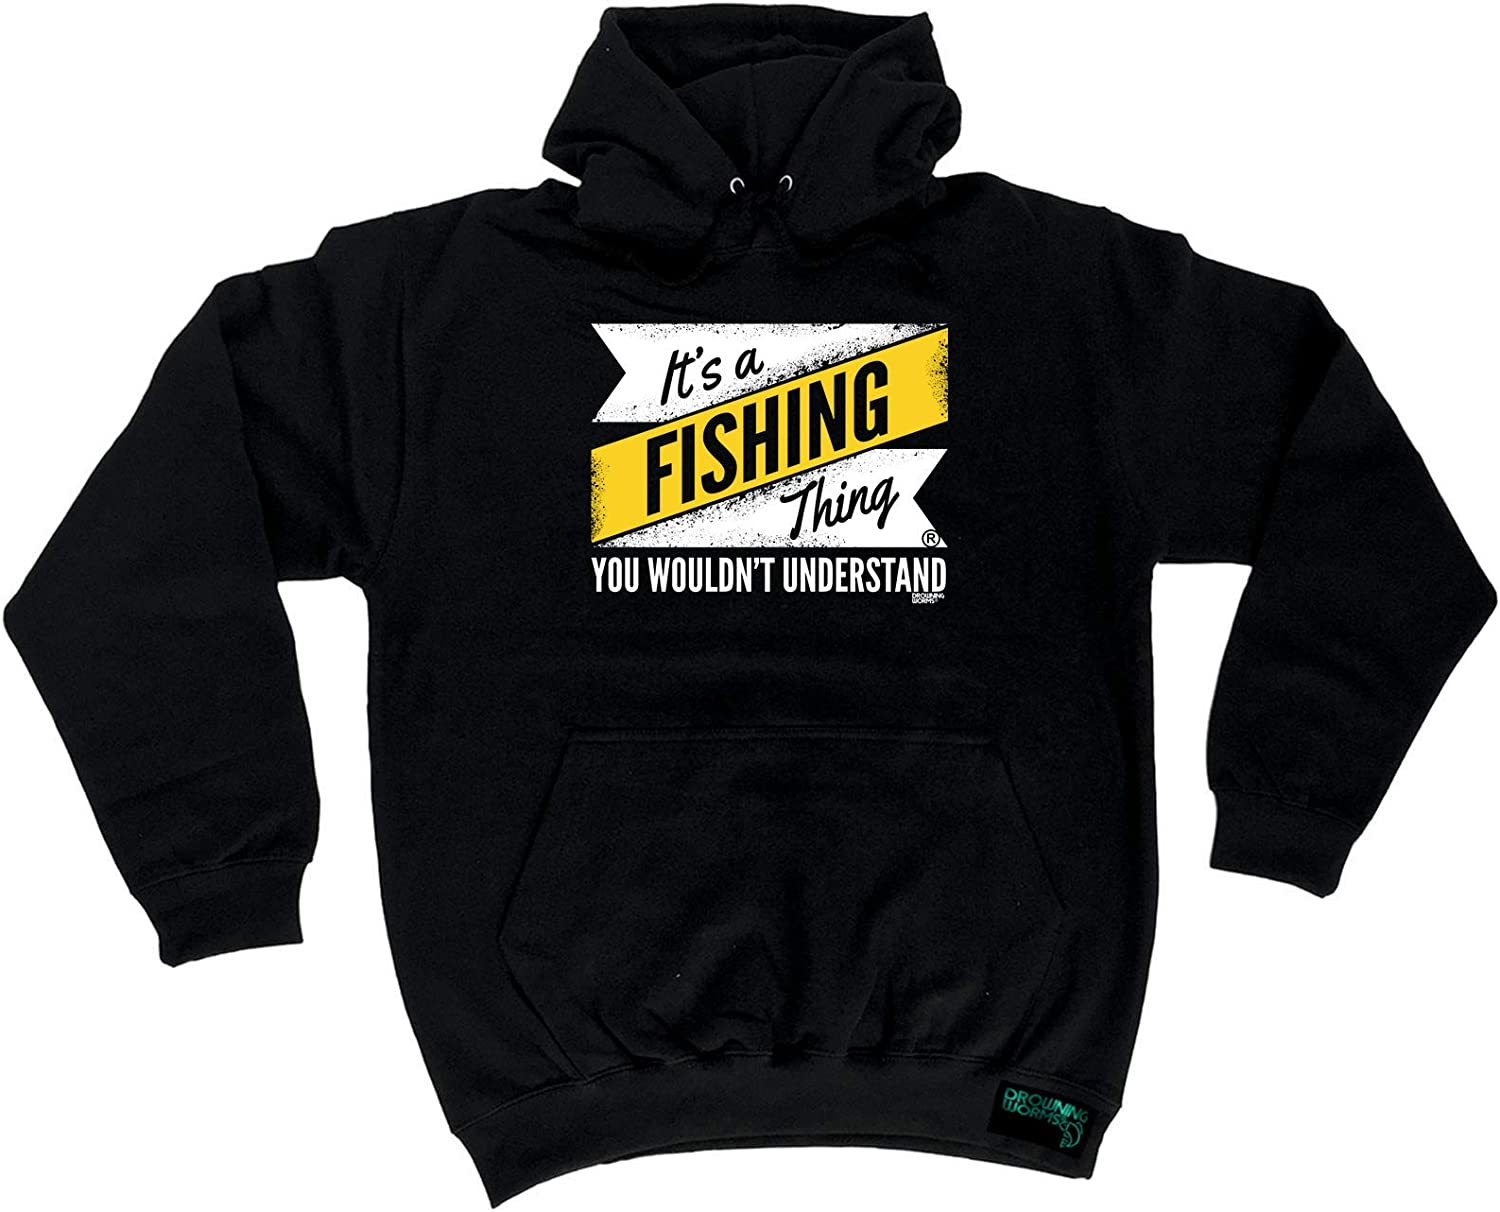 Hook Line And Sinker Drowning Worms SWEATSHIRT jumper birthday gift funny fish